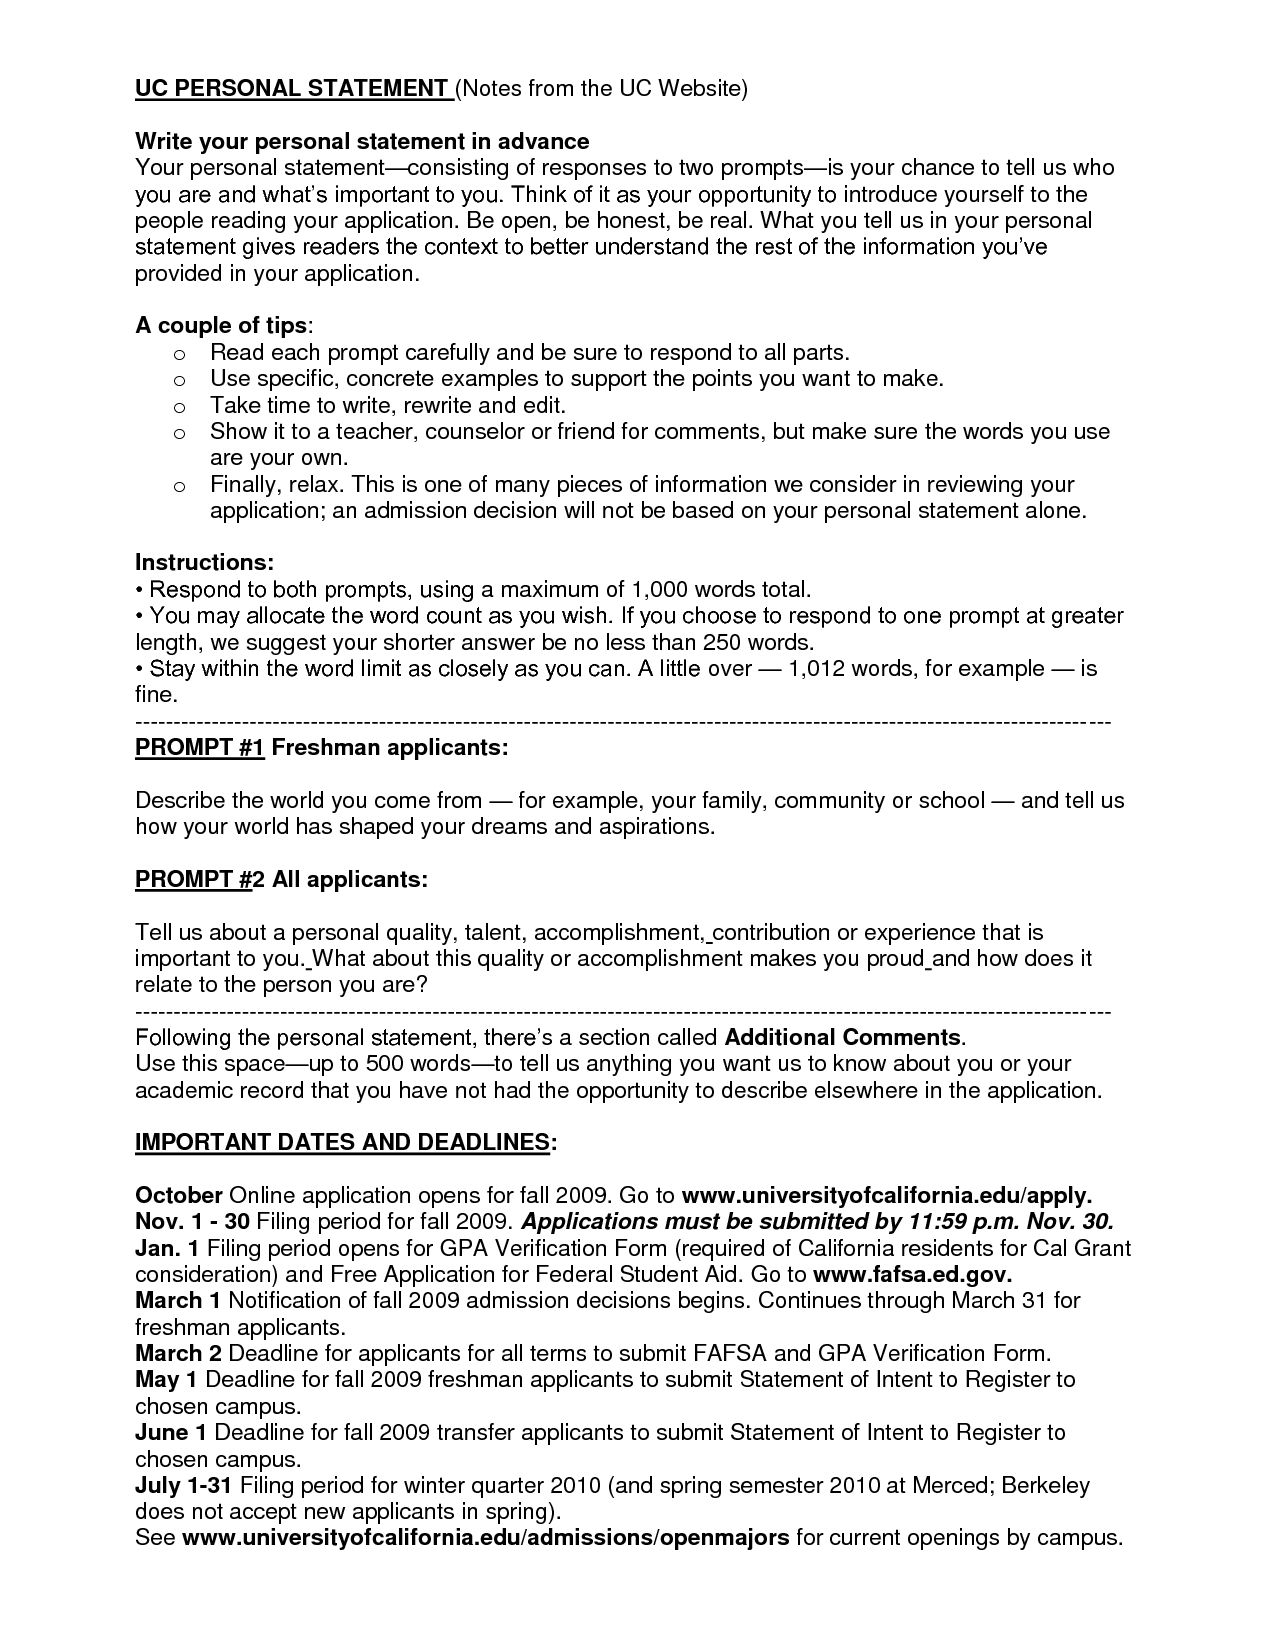 Essays Word Essay Example College Examples Writings And With Regard To 500 Word Essay Template Great Cretive Templa Essay Words Essay Examples 500 Word Essay